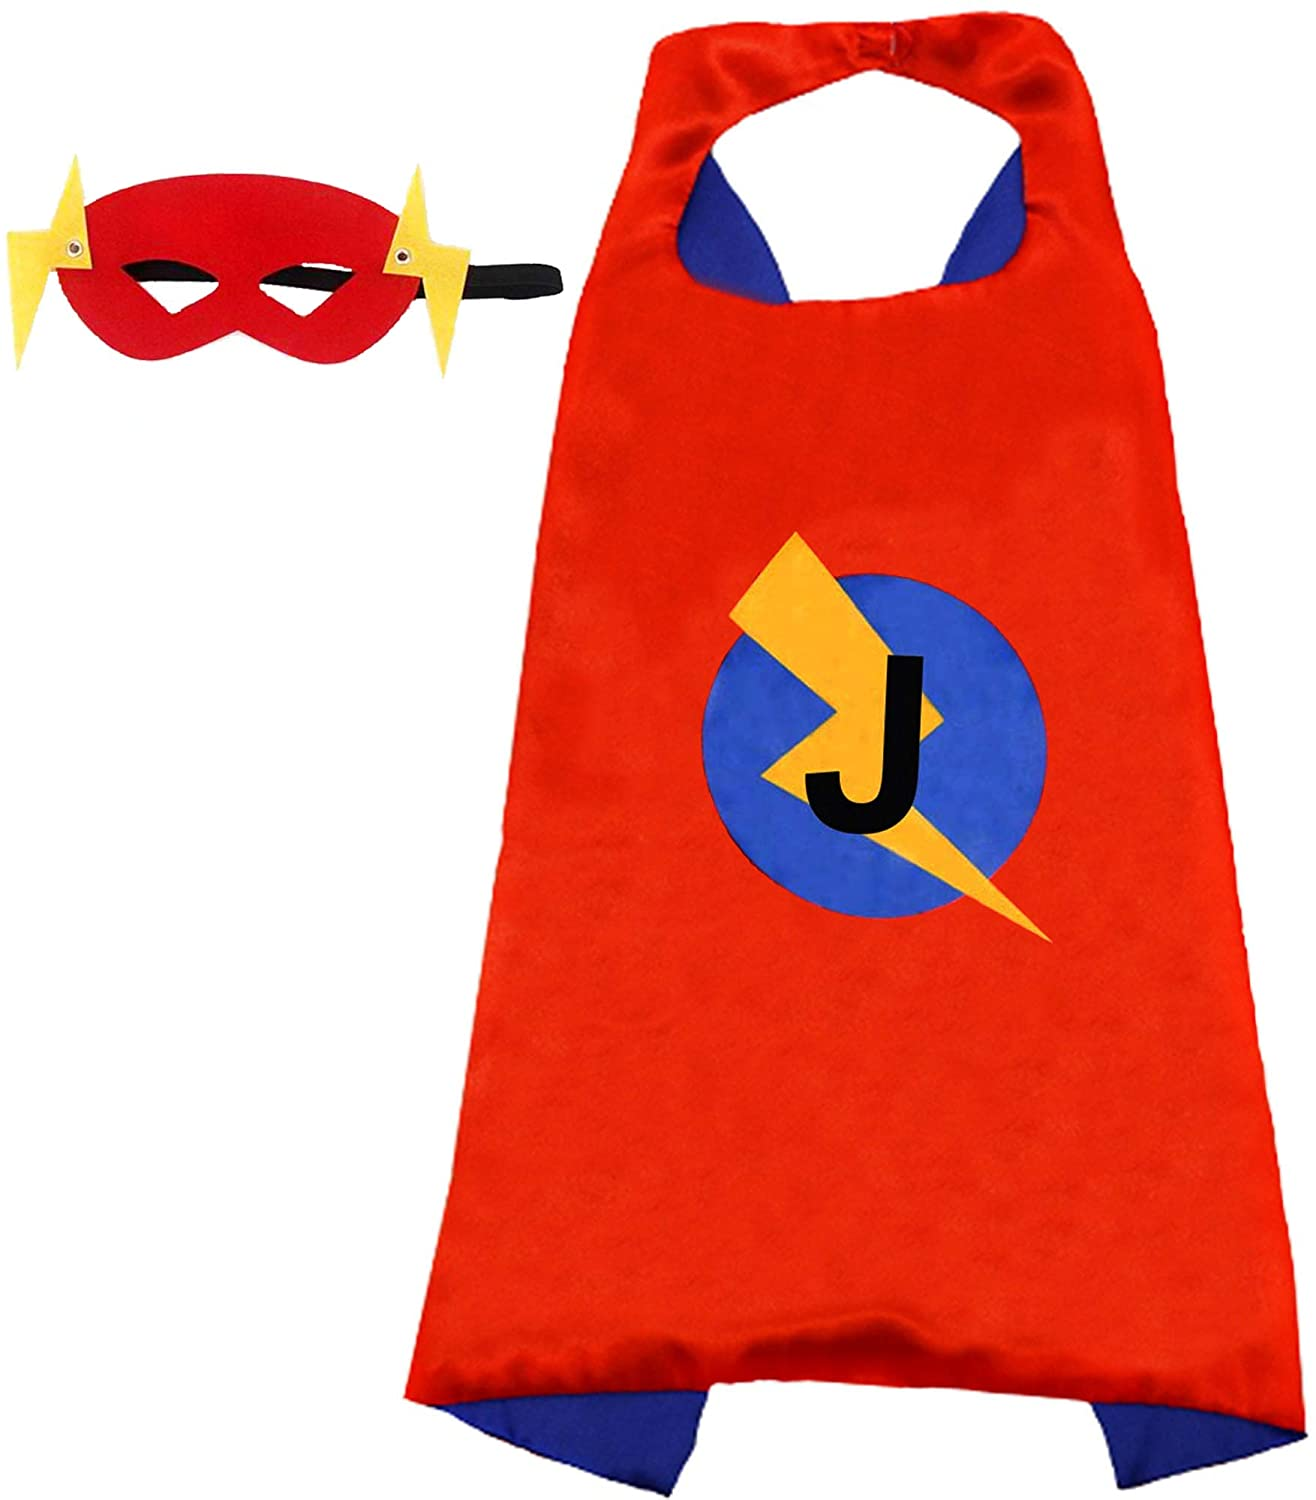 Initial Letter Name Superhero Cape and Mask for Kids/Adult Halloween Dress Up Costume Super-Hero Birthday Capes